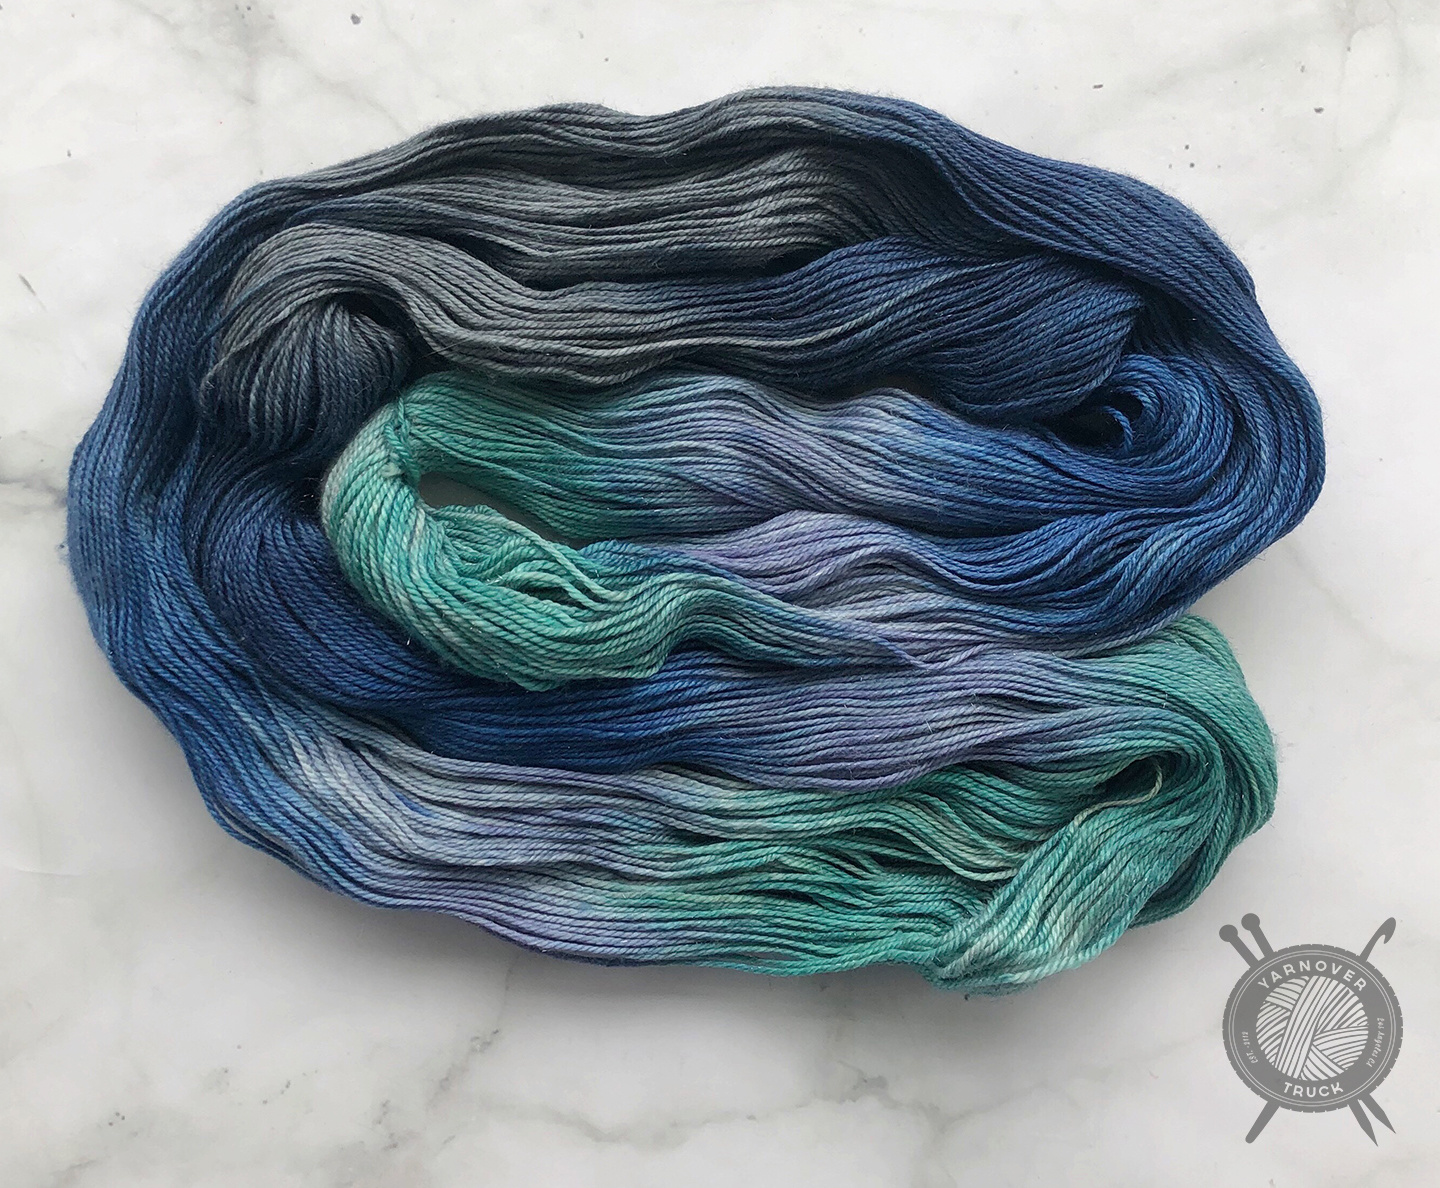 Yarn Love Beneath The Waves on Marie Antoinette from Yarn Love